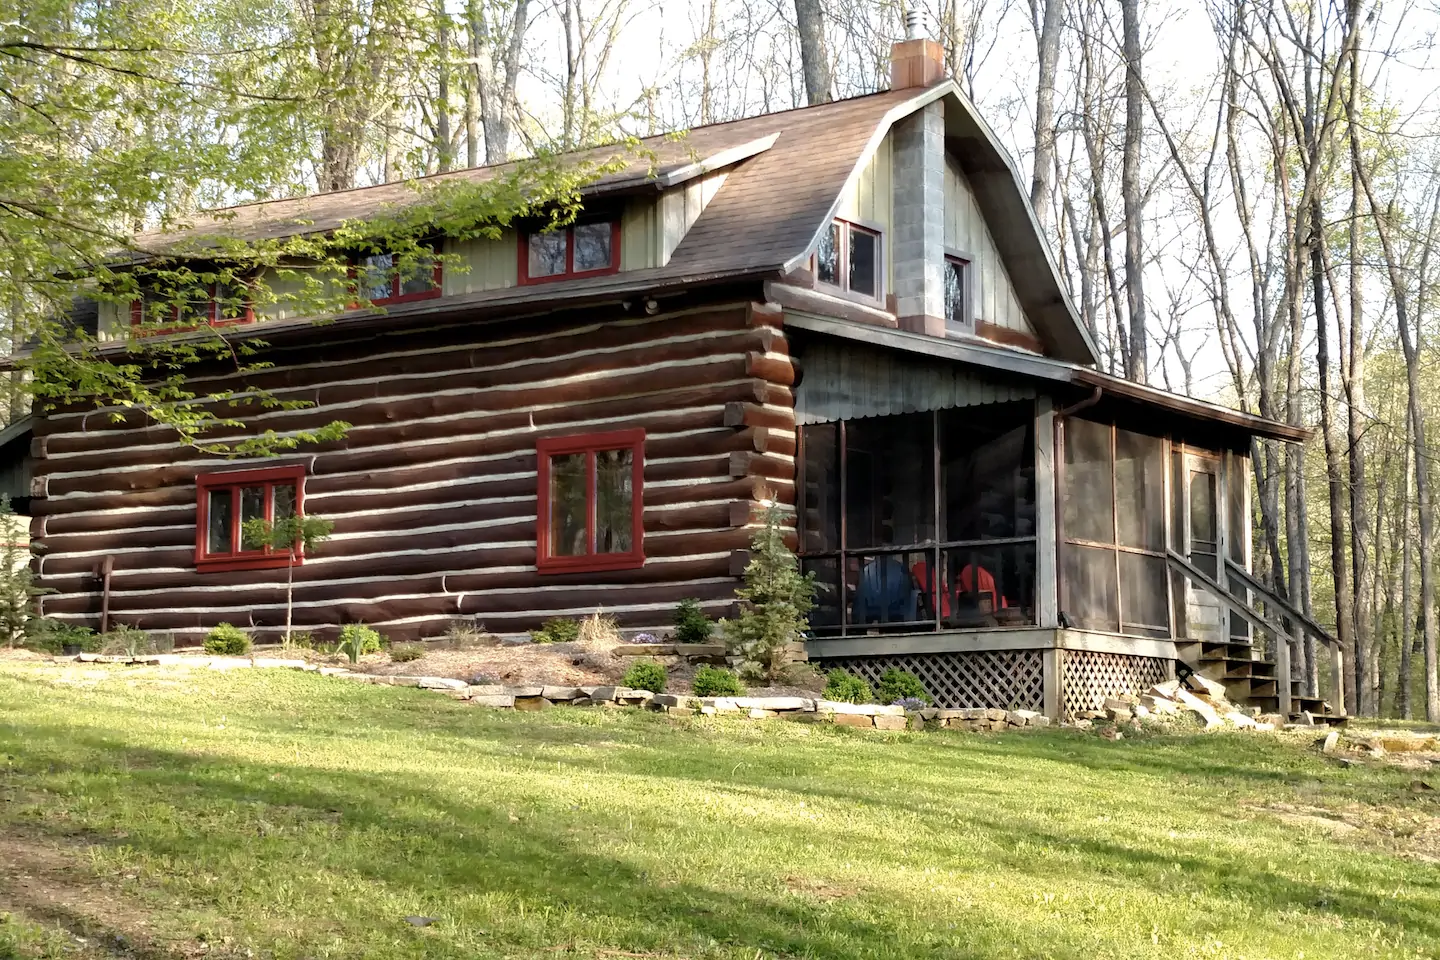 The 9 Best Indiana Cabin Rentals of 2020